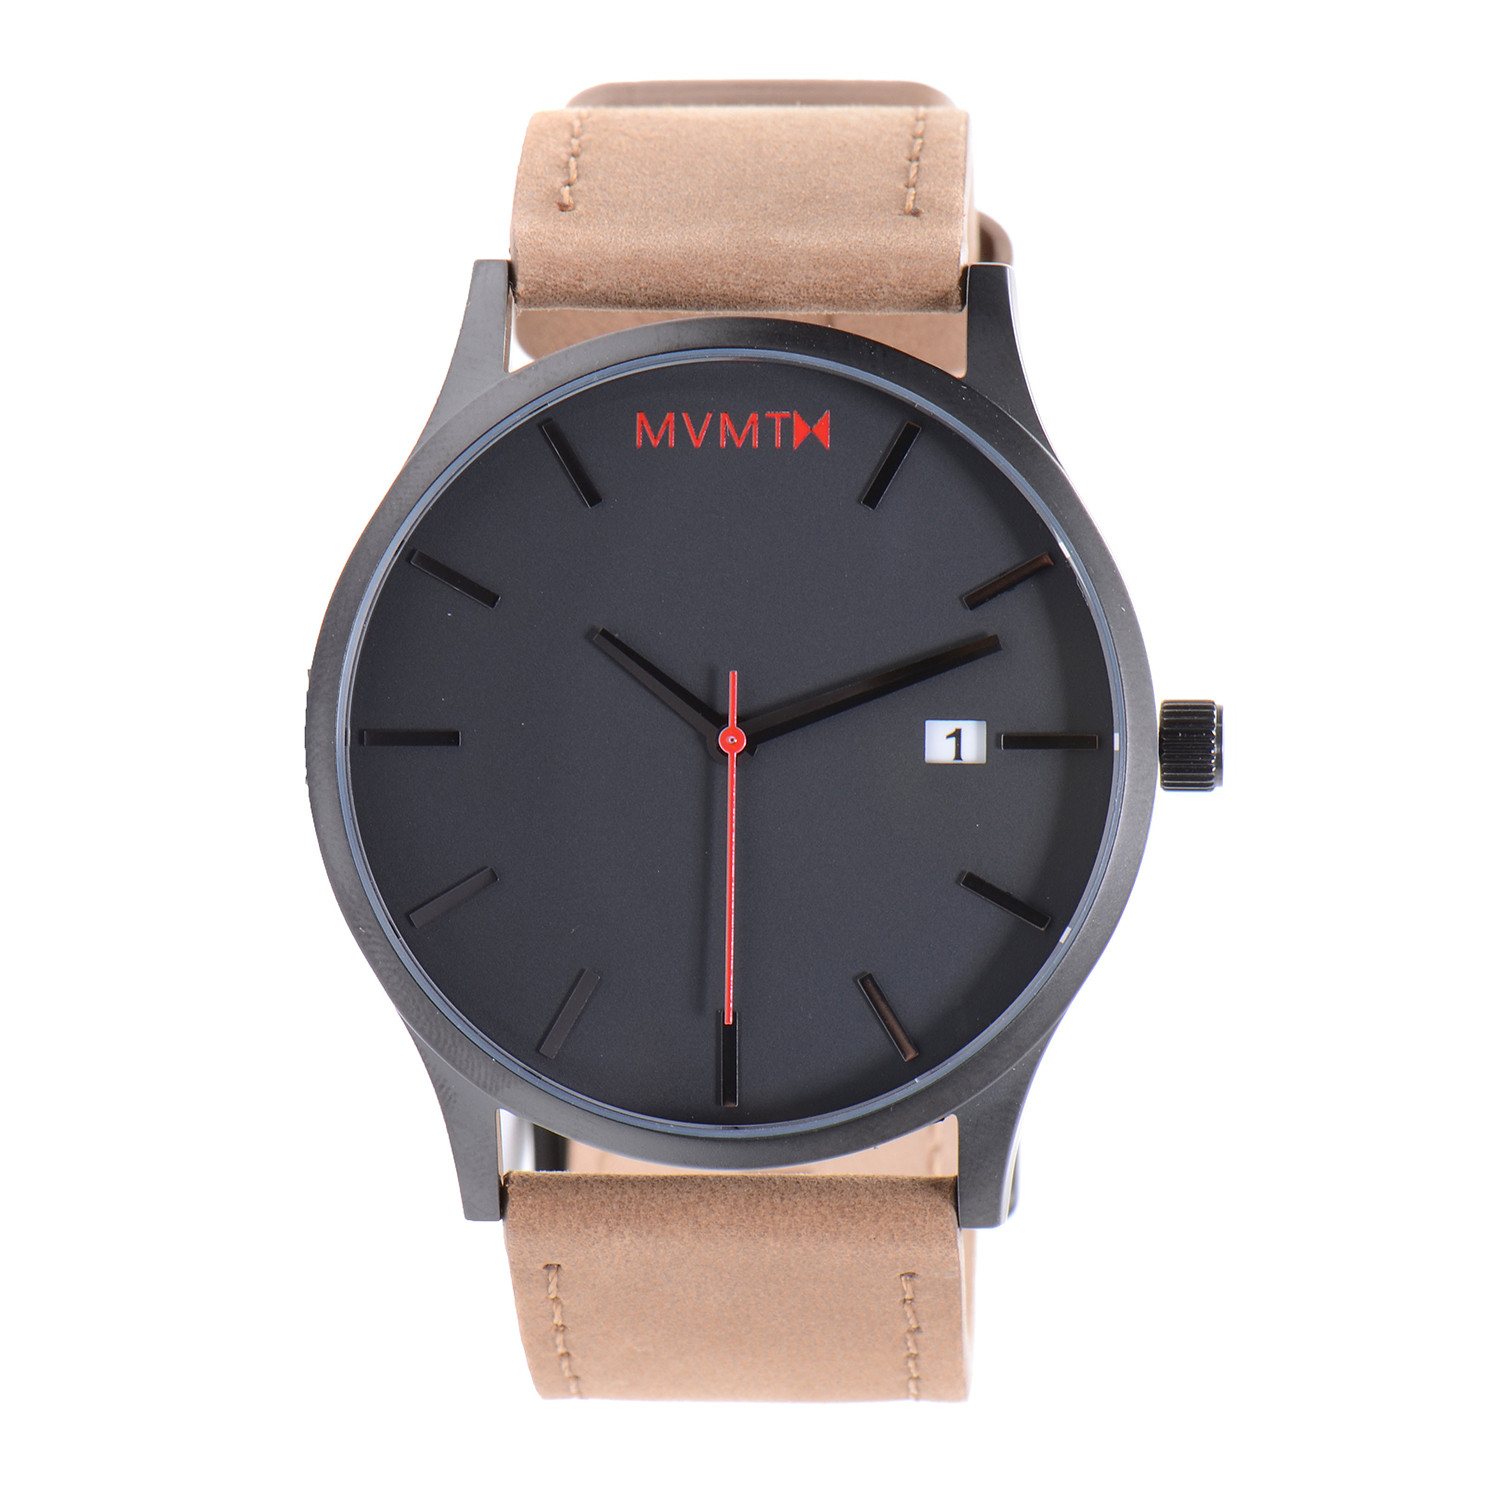 series watch brand products minimal black watches hemmet brown the